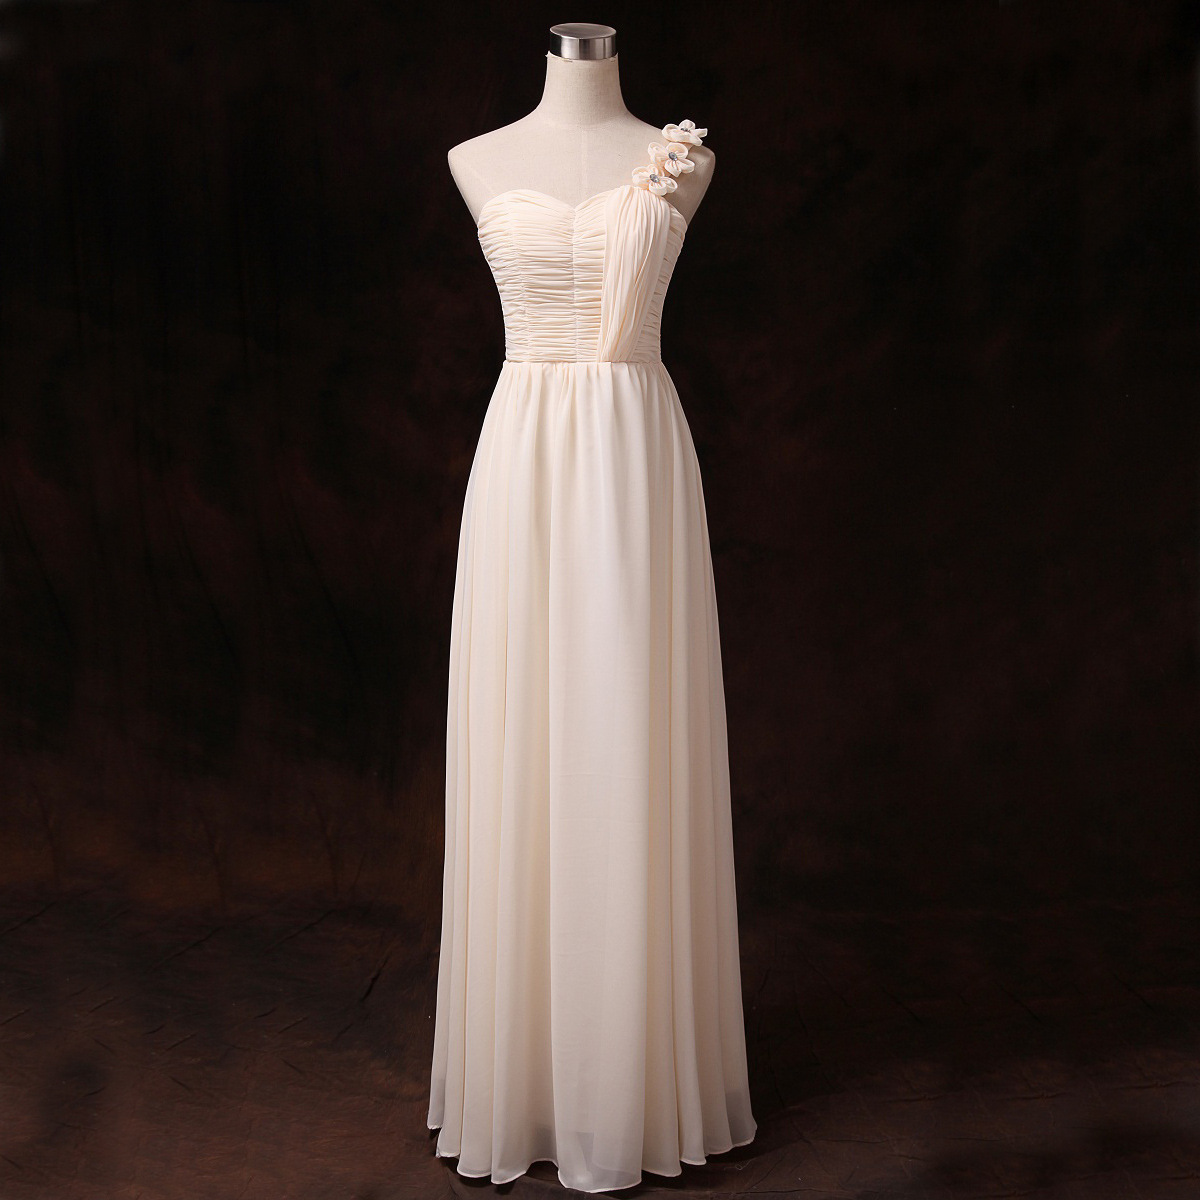 Good New One Shoulder Champagne Color Evening Party Prom Dress Bridesmaid Wedding Long Dress